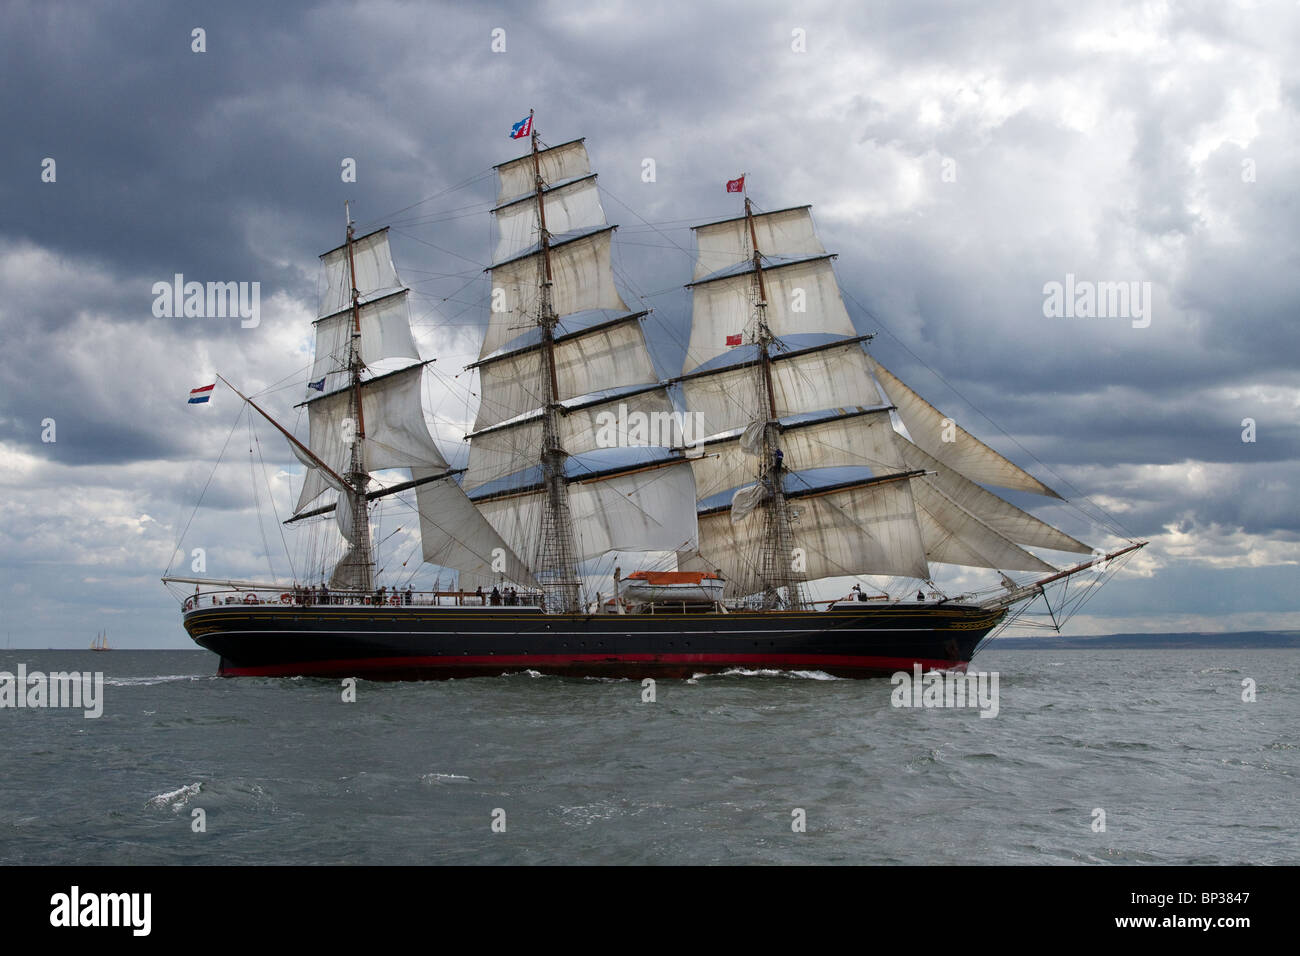 Stad Amsterdam at sea, a sailing voyage under square sail. Majestic Sailing Vessels at the 54th Annual Tall Ships - Stock Image